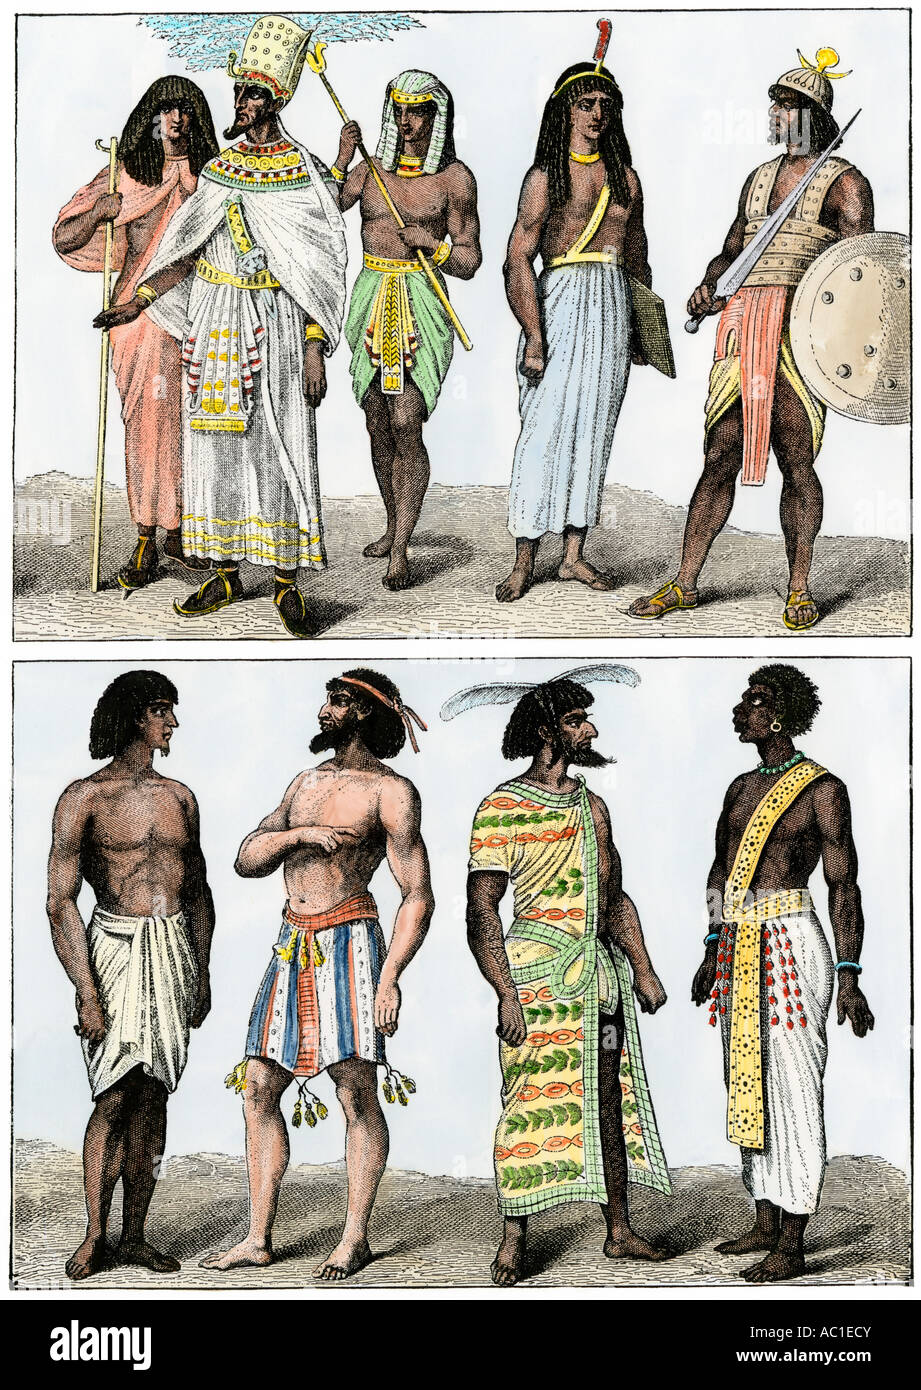 Ancient Egyptian pharaoh with a court officer and a fan bearer, a judge, a guard, and neighboring tribesmen. Hand - Stock Image